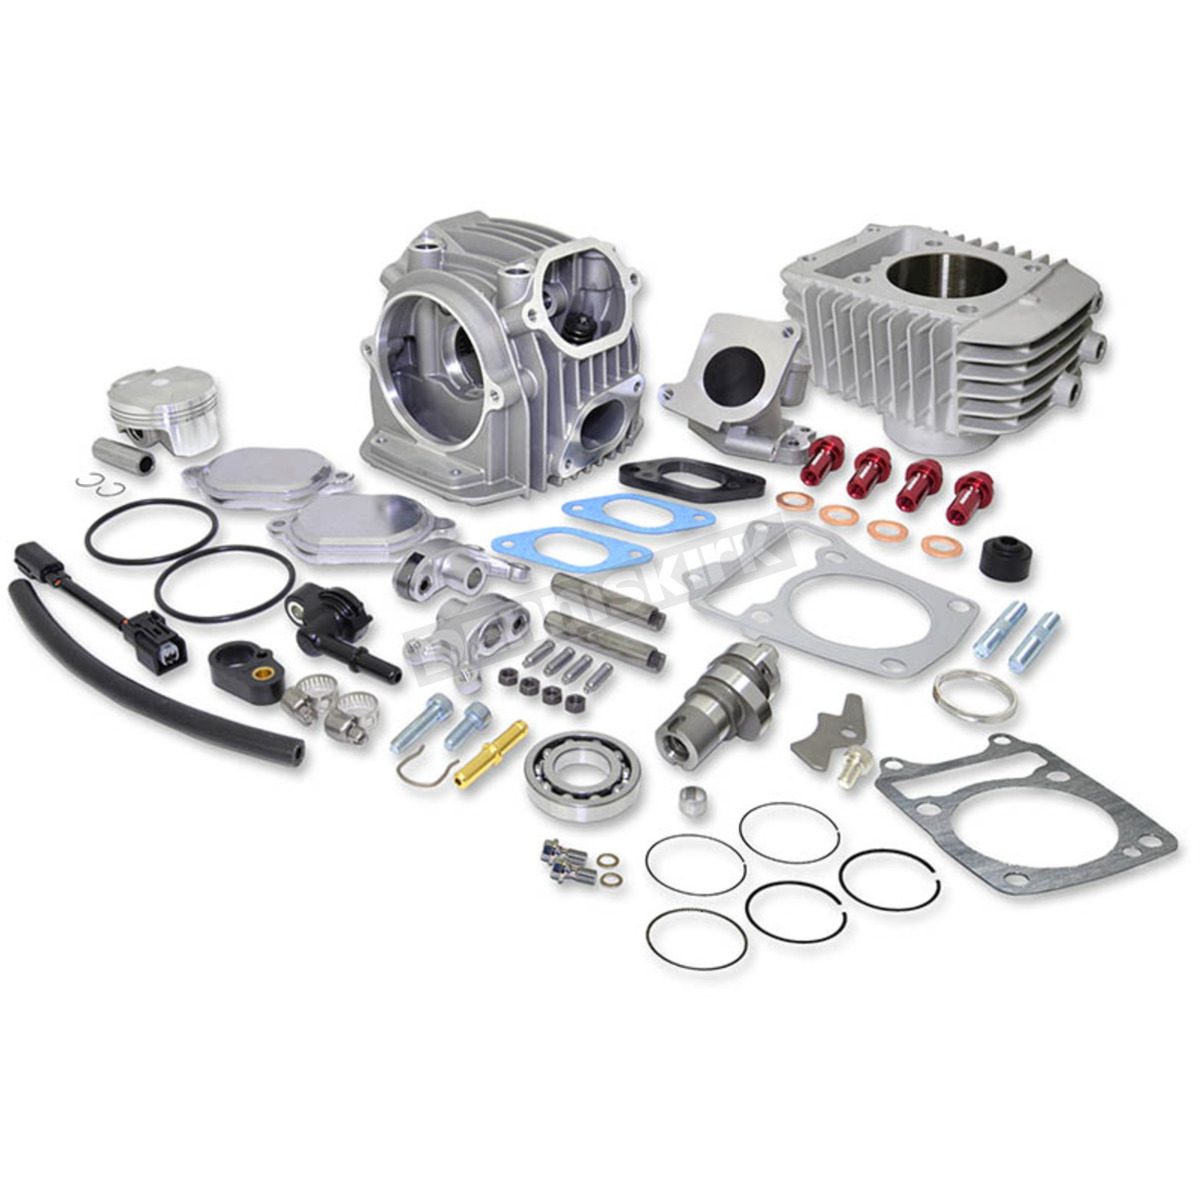 170cc Big Bore Kit with 4 Valve Cylinder Head - MB623003